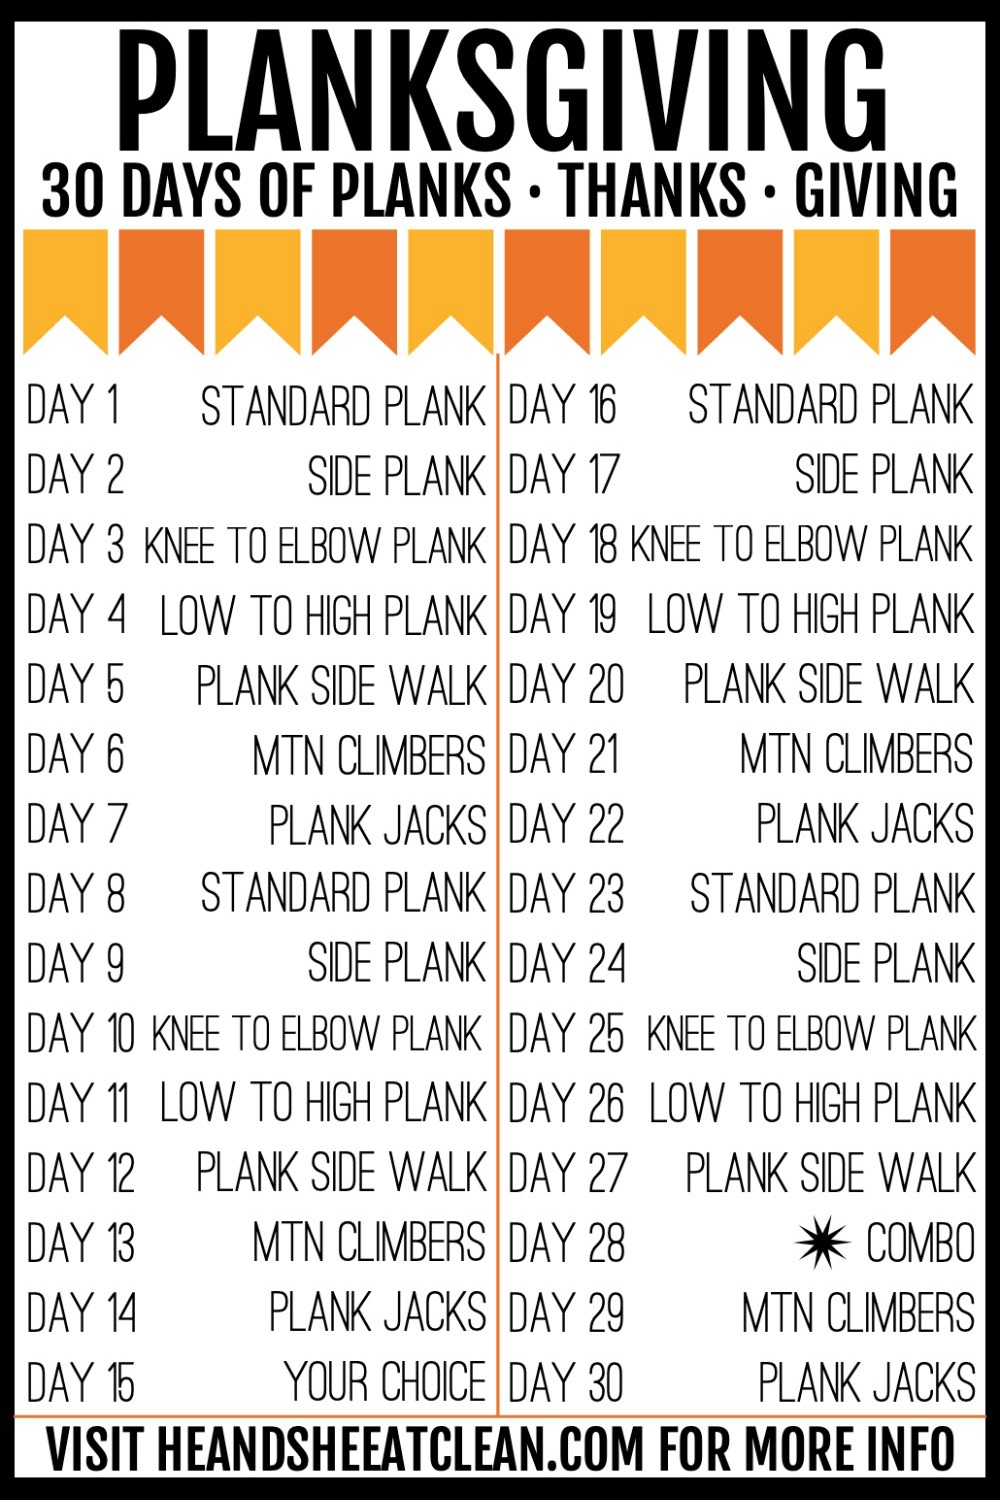 Planksgiving 30-day plank, thanks, and giving challenge with challenge listed